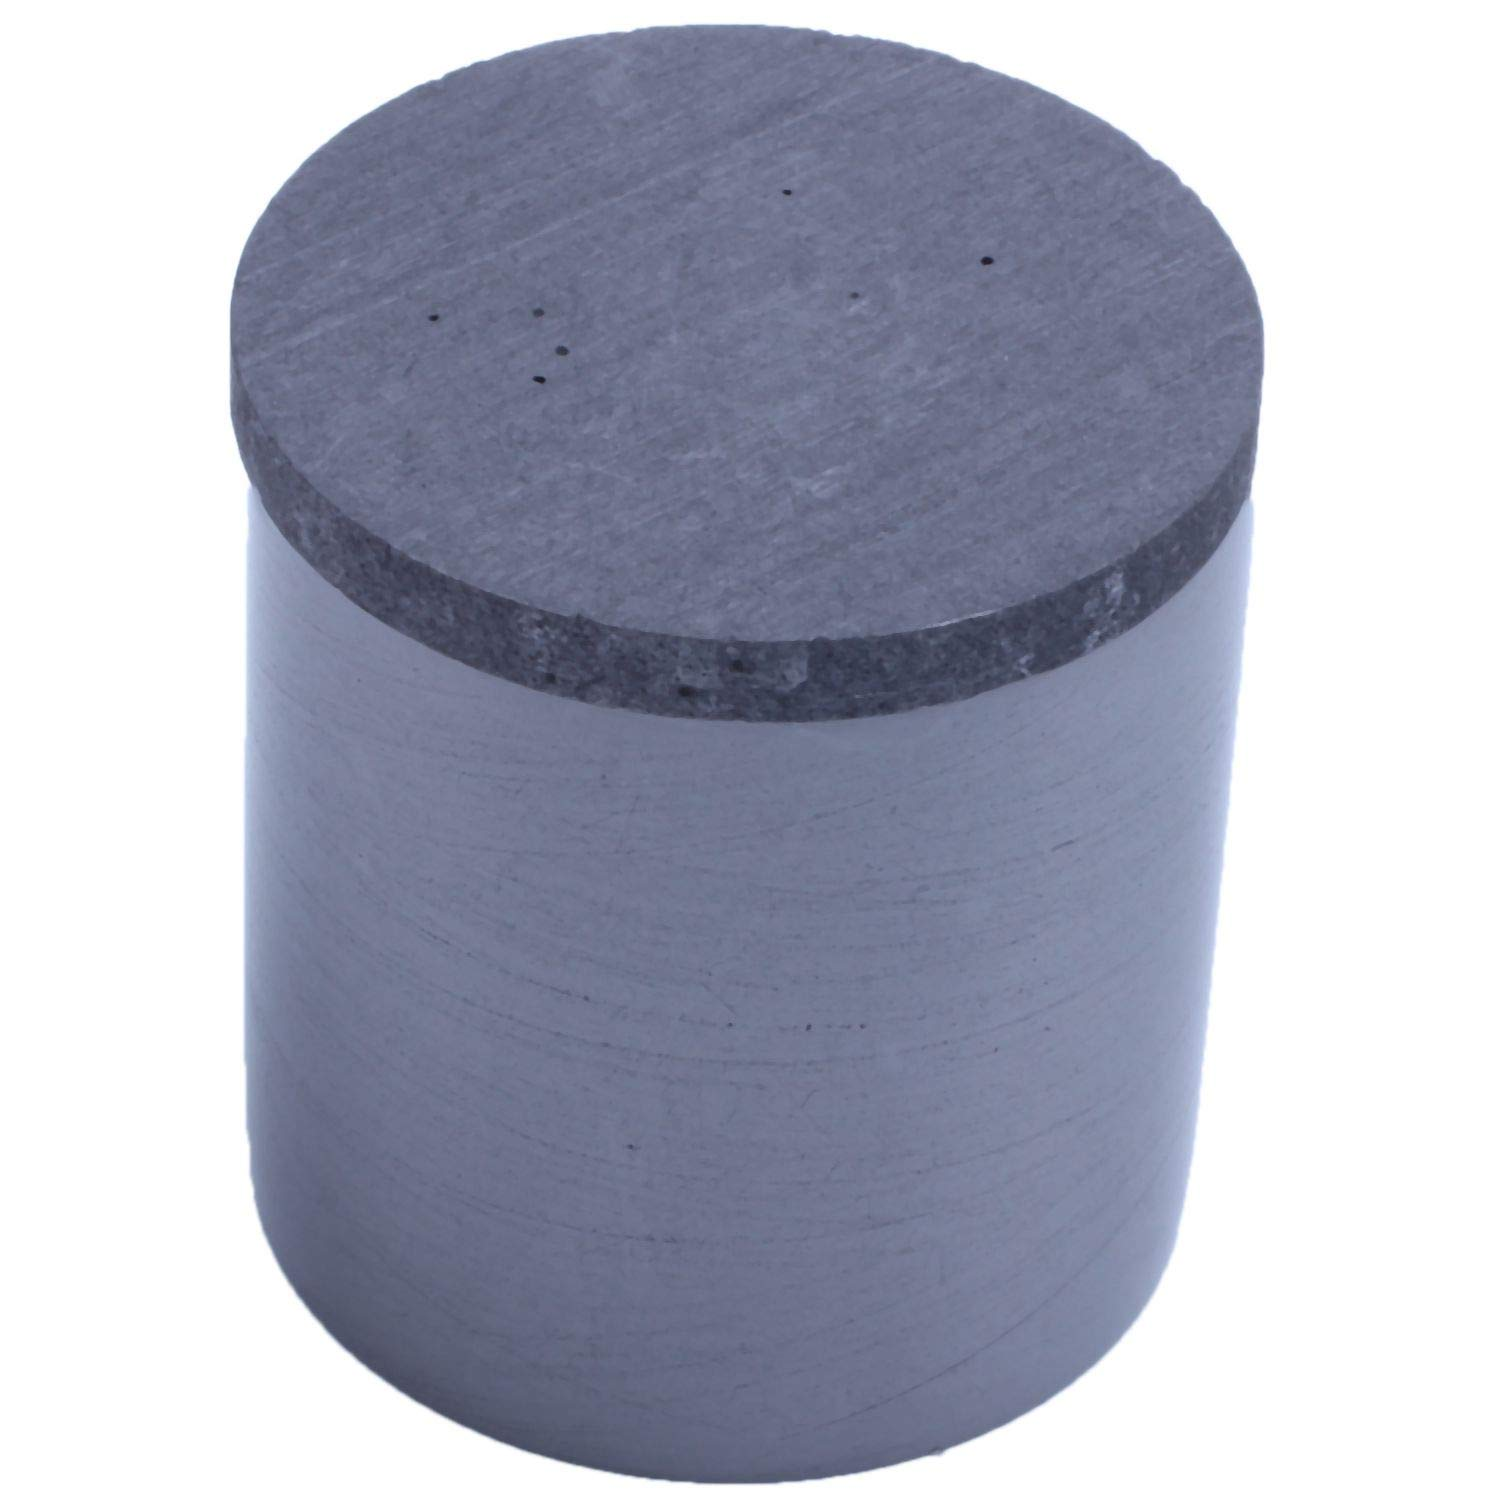 Vaorwne 1x High Purity Graphite Casting Melting Crucible for Gold/&Silver with Lid Black